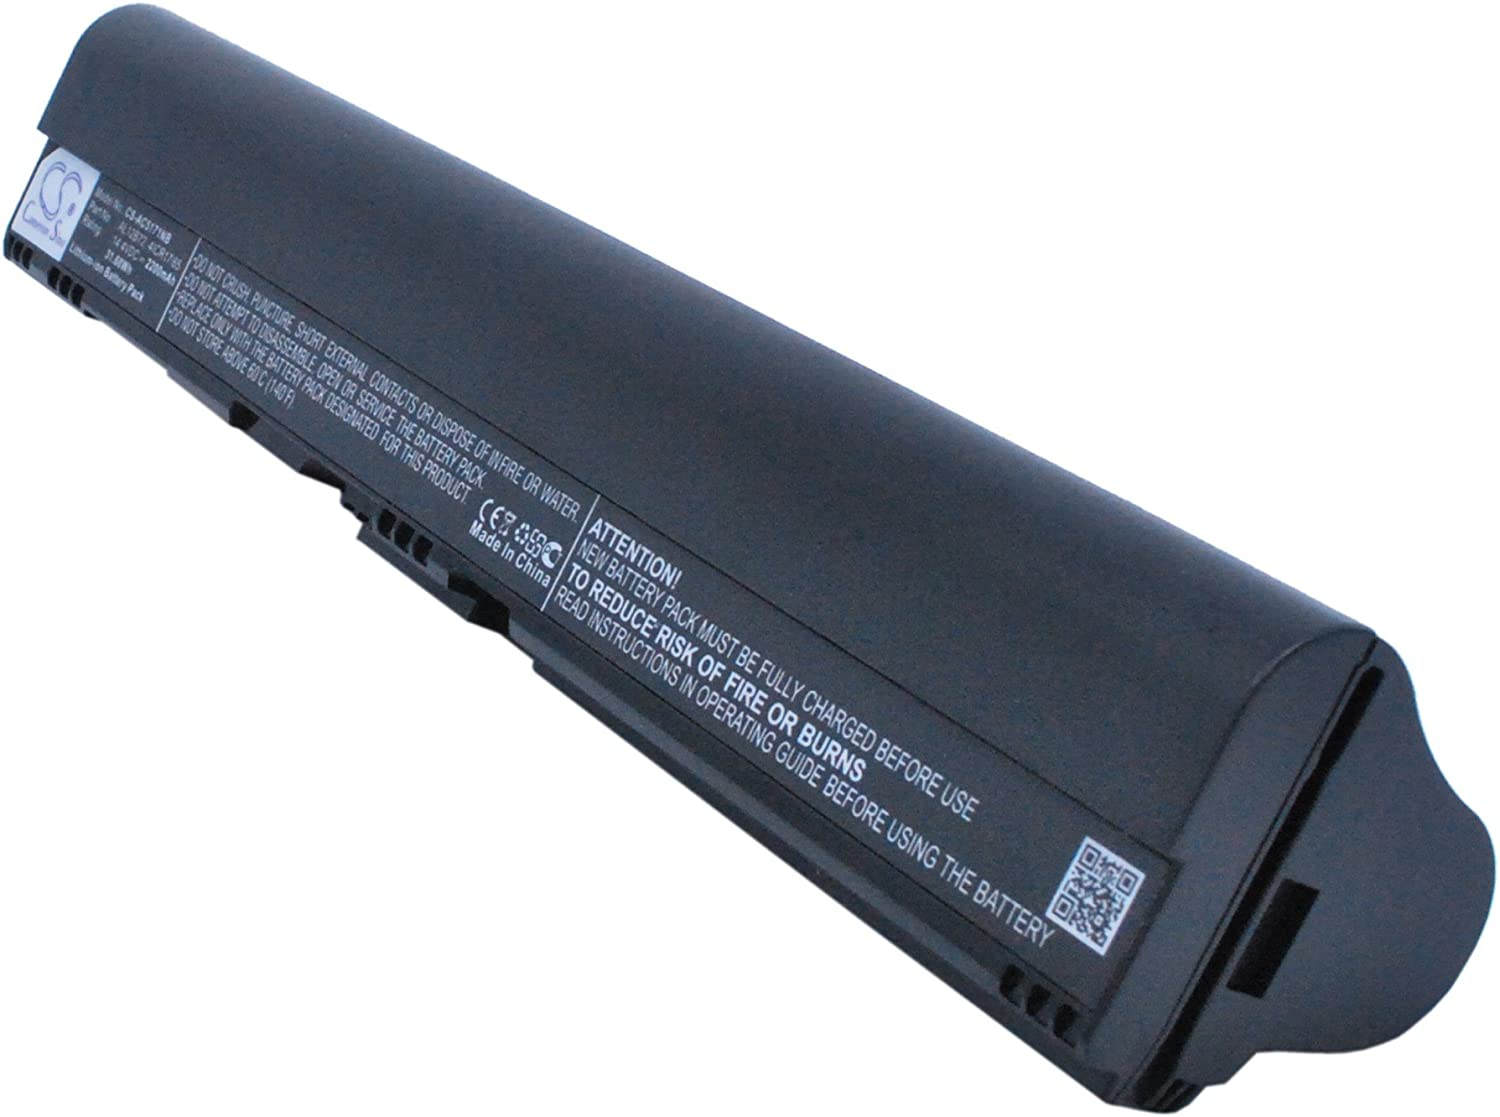 Rechargeable Battery for Acer Aspire One 725, Aspire One 756, Aspire V5-171, Chromebook AC710 Replacement for Acer 4ICR17/65, AL12B31, AL12B32